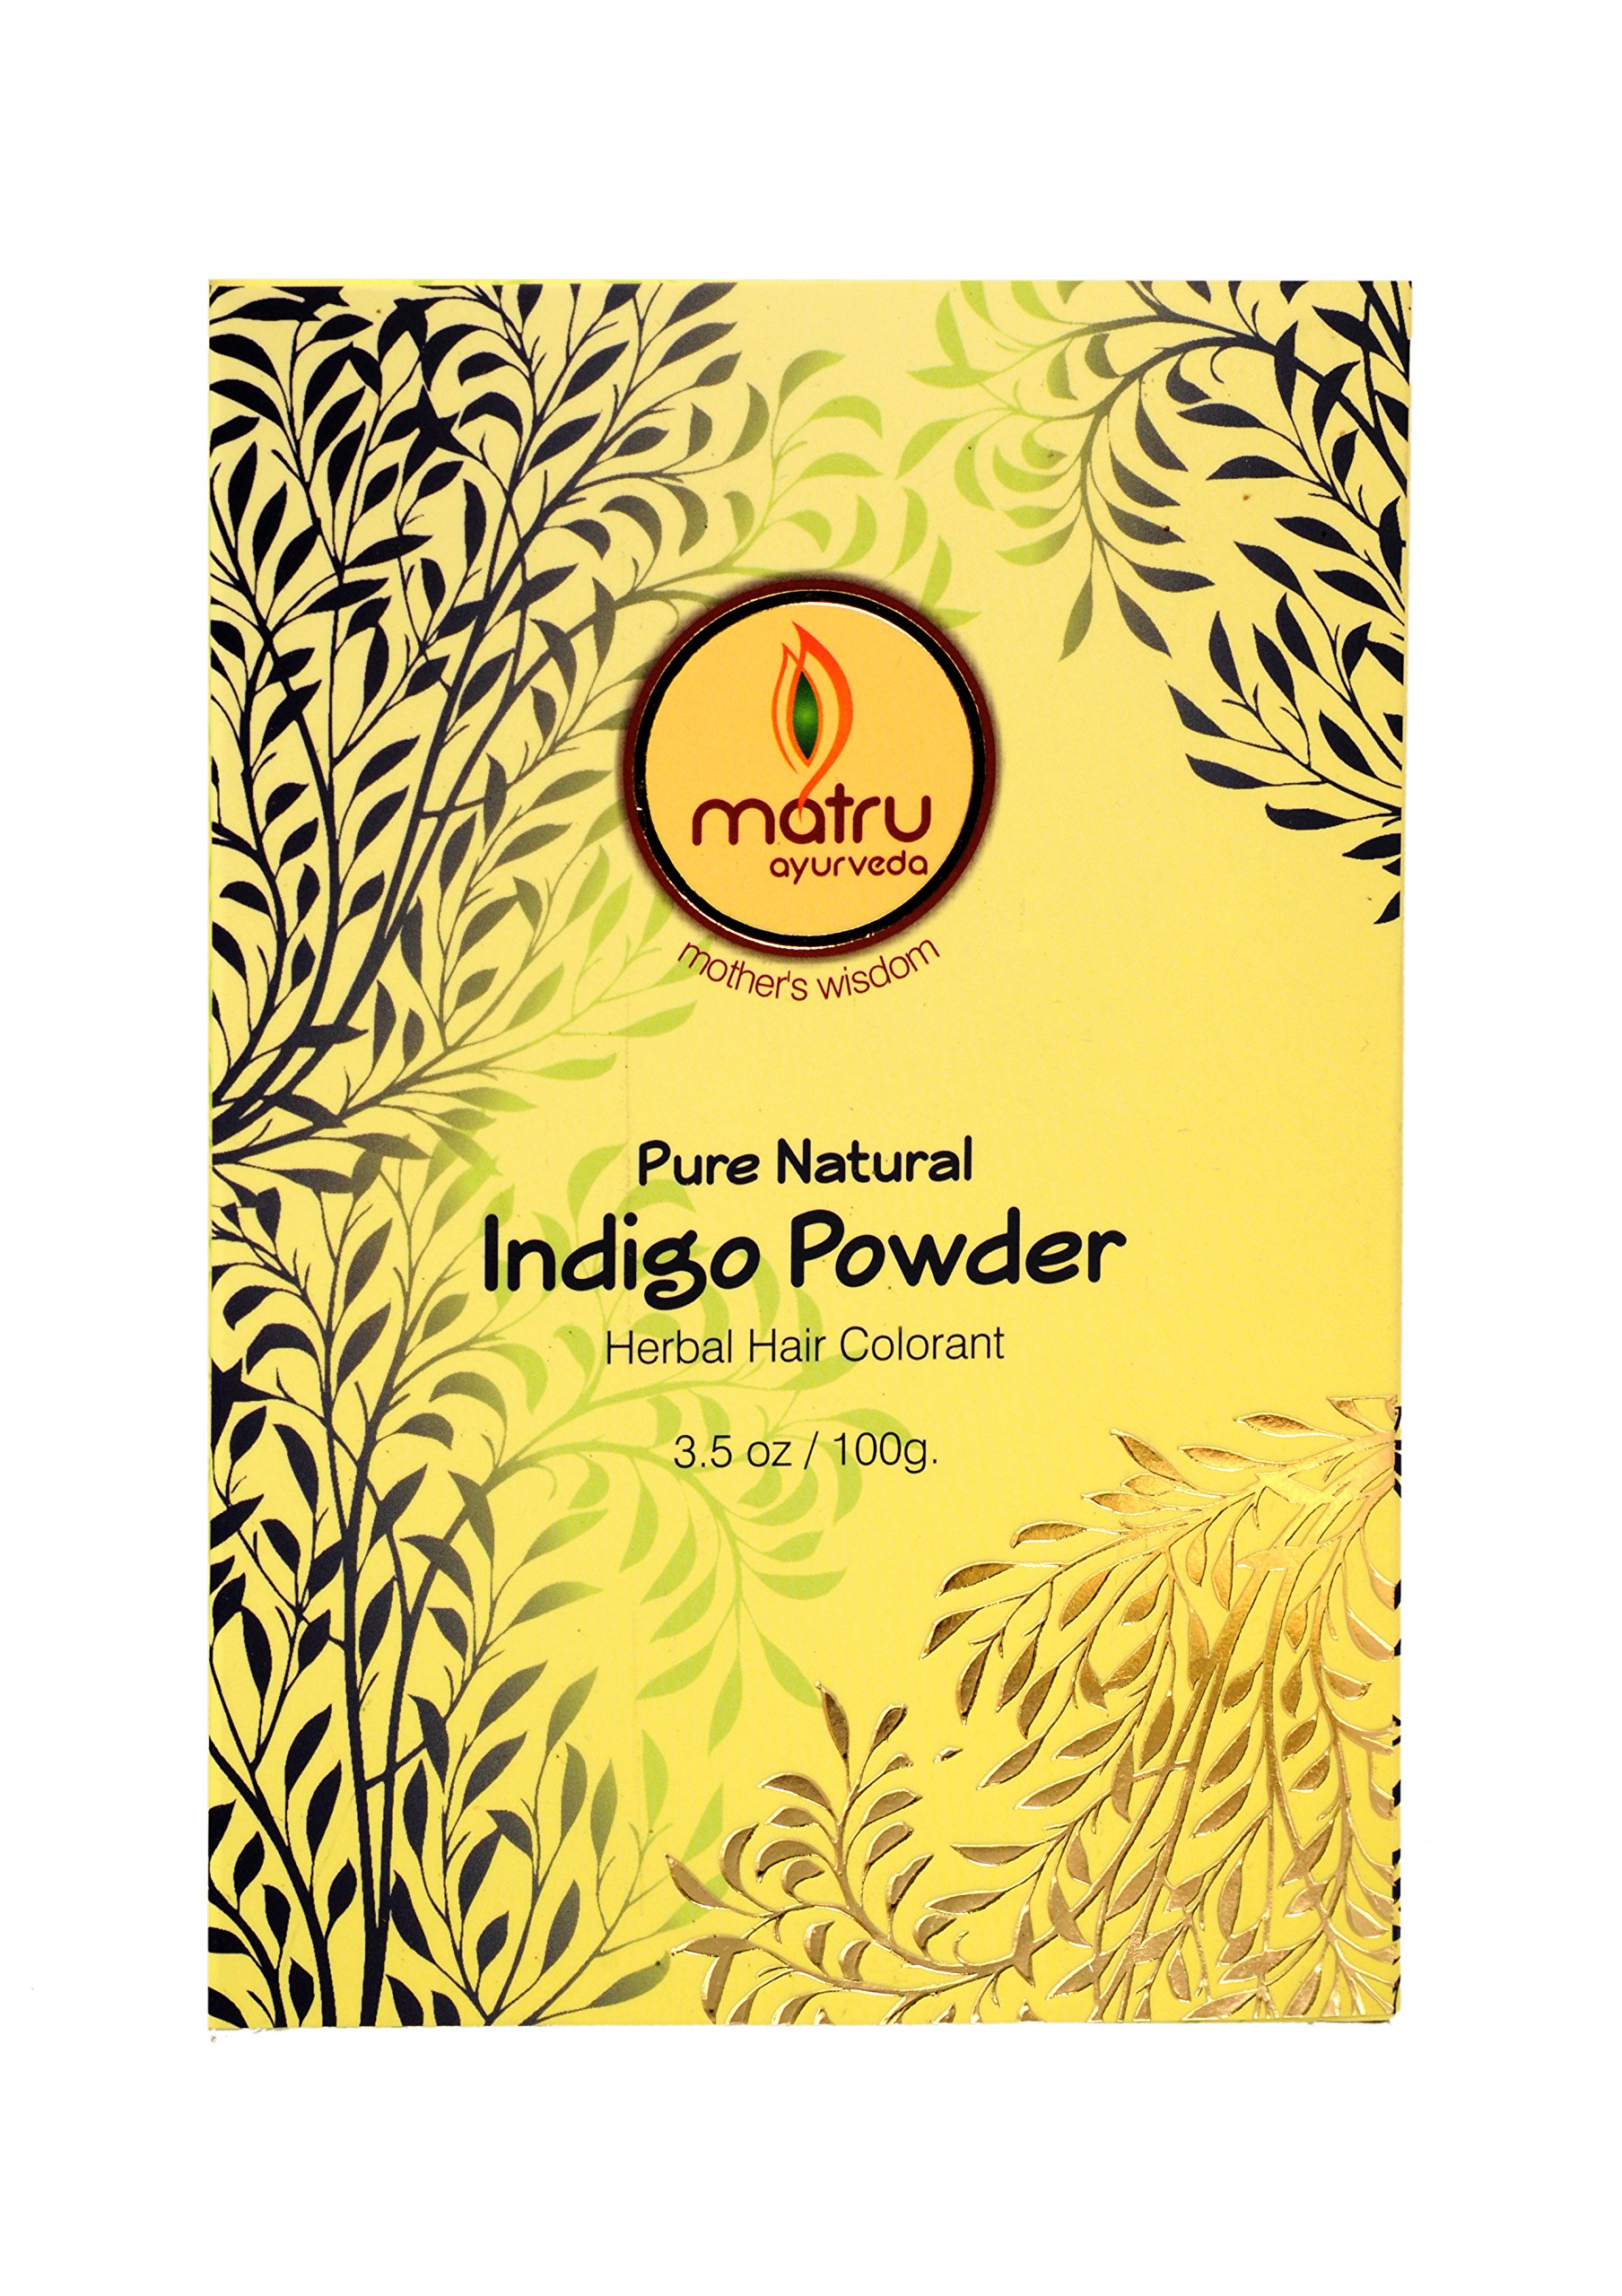 MATRU AYURVEDA Indigo Leaves powder Hair/Bearde, Color; 100% Pure Natural and Chemical Free Bestseller Hair and Beard Color/Dye, 100gms/3.5 oz, Ayurvedic/Herbal hair color